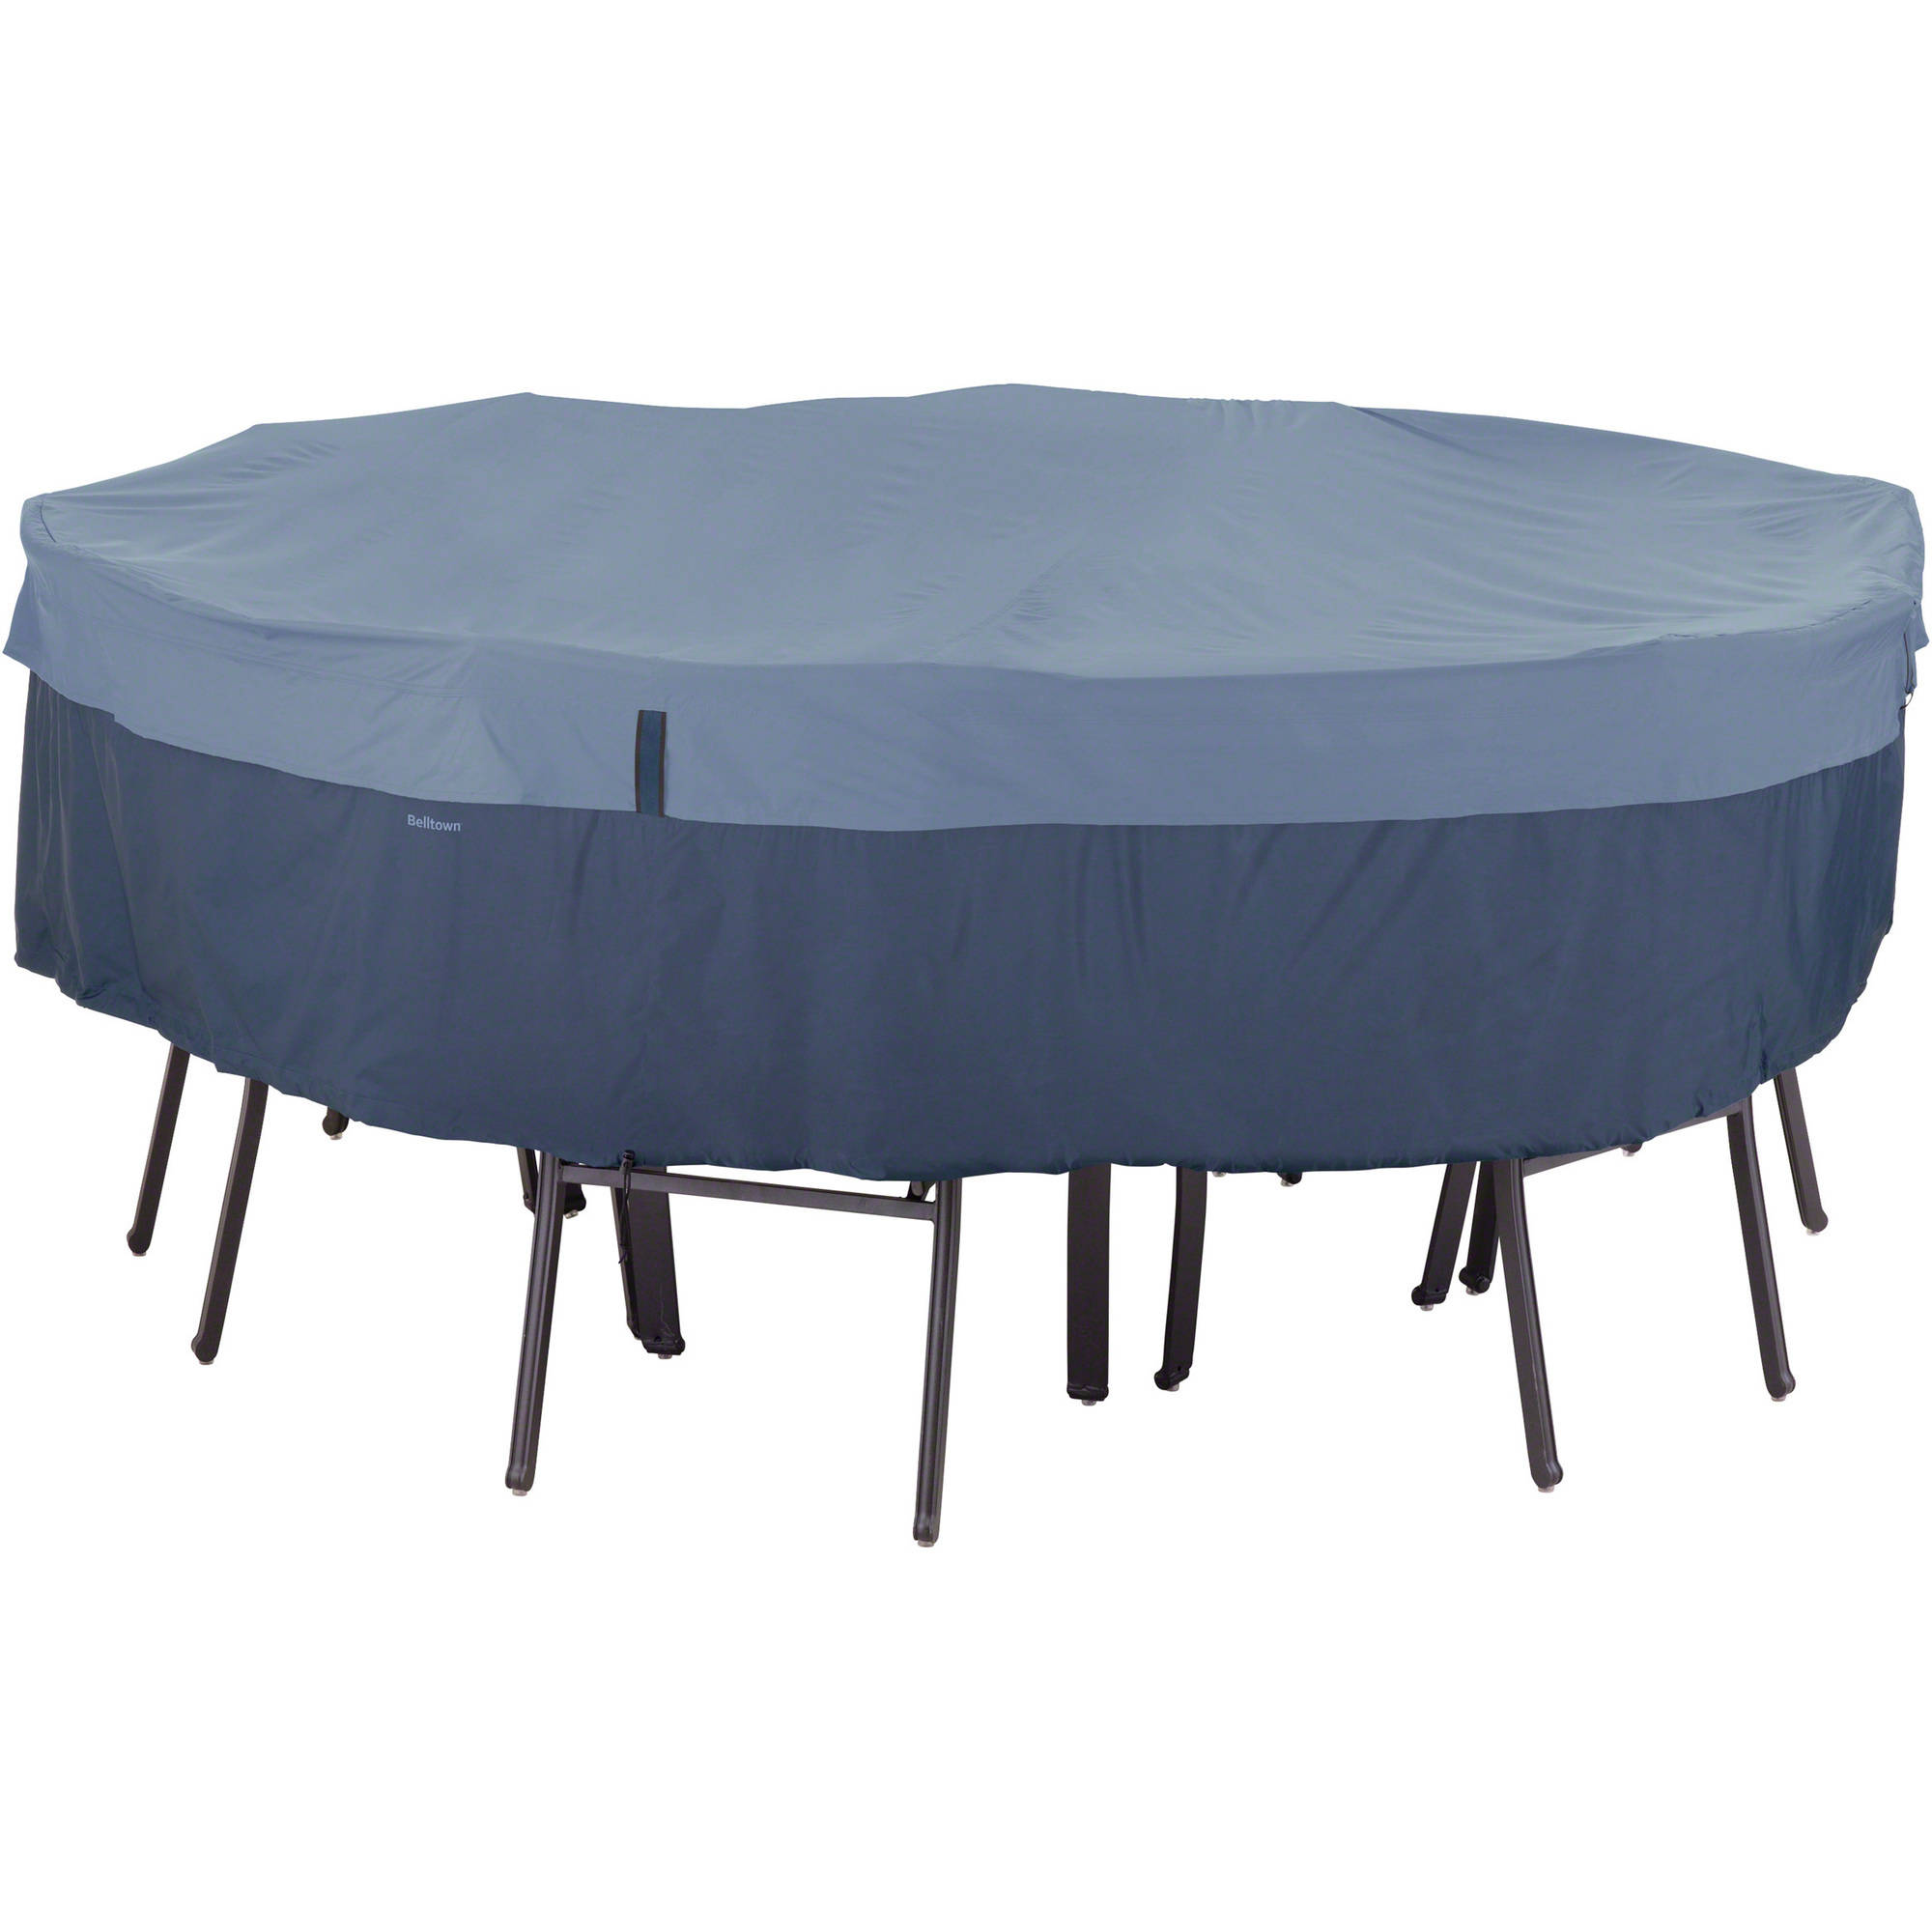 Classic Accessories Belltown Round Table and Chair Patio Furniture Storage Cover, Large,... by Classic Accessories